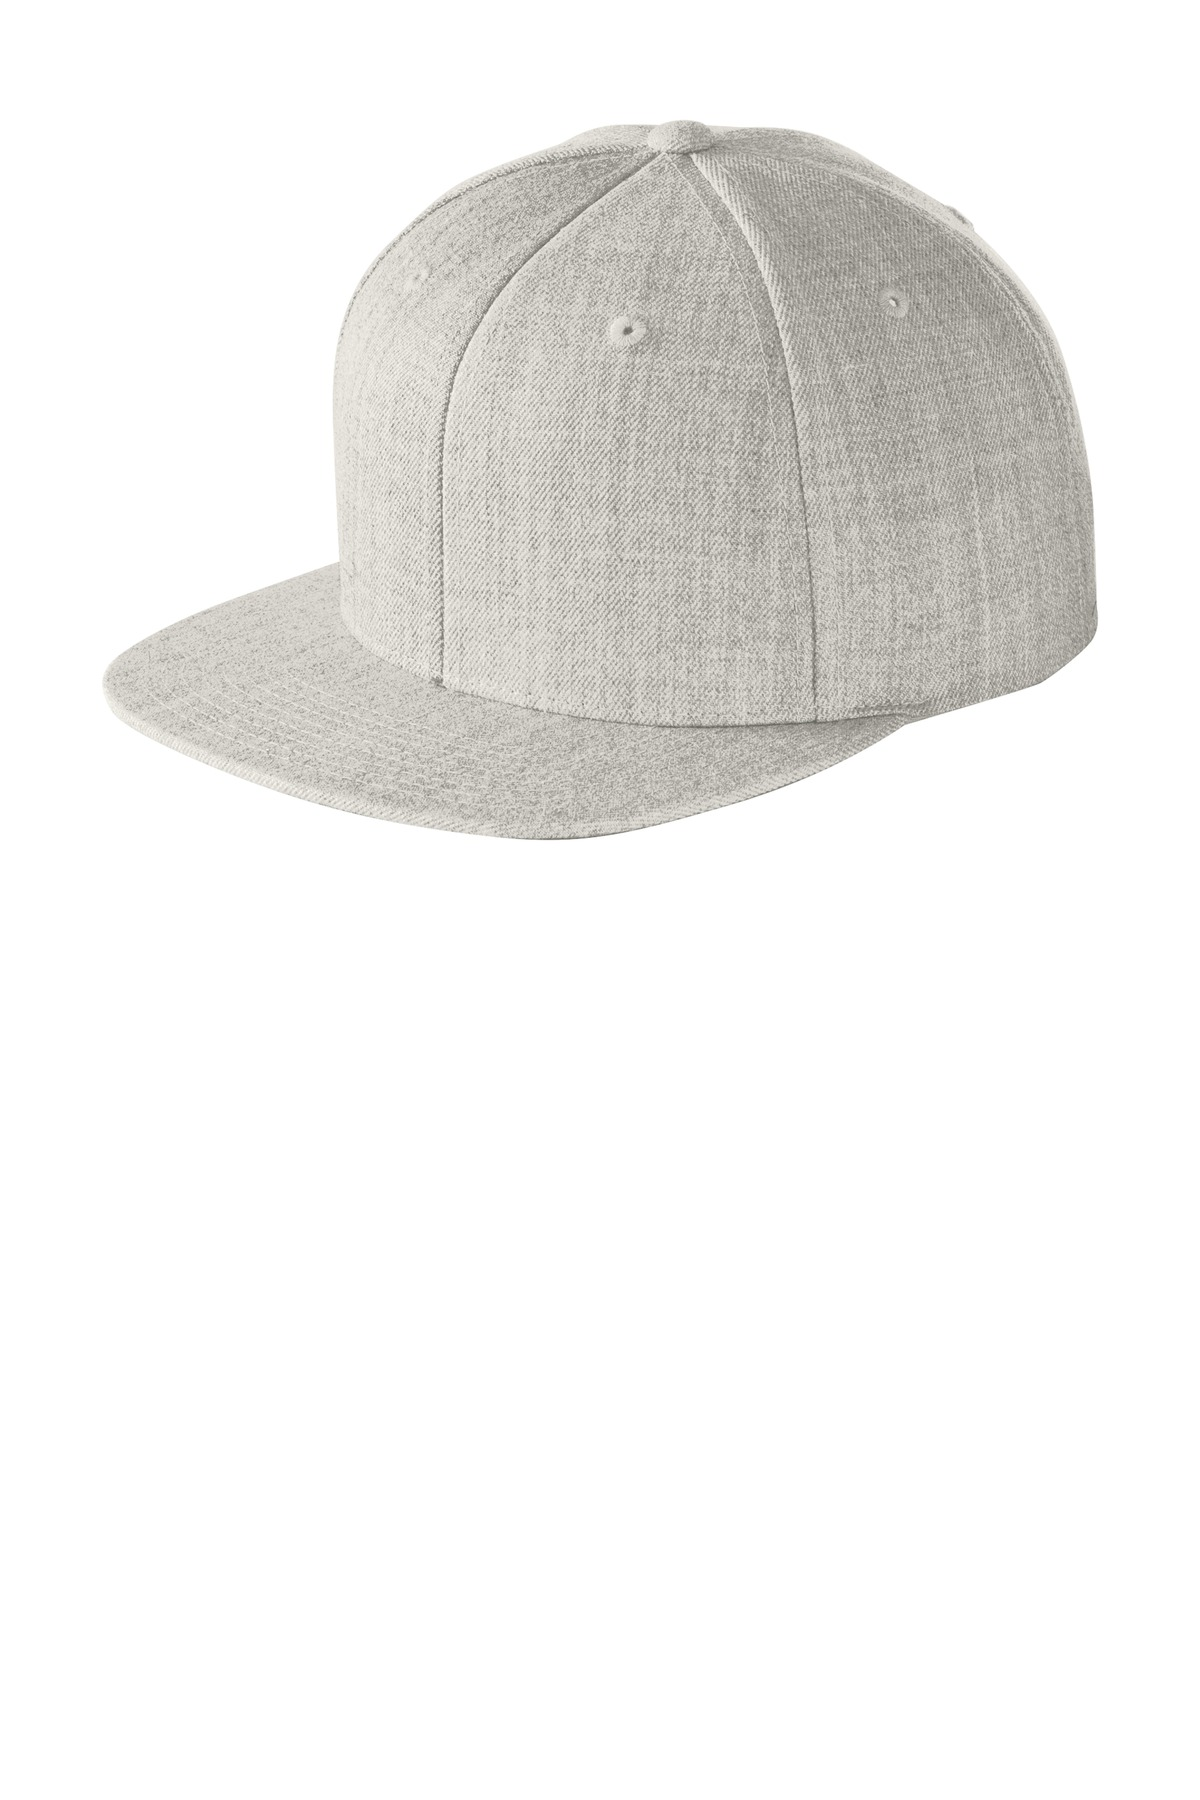 Sport-Tek ®  Yupoong ®  Flat Bill Snapback Cap. STC19 - Heather Grey